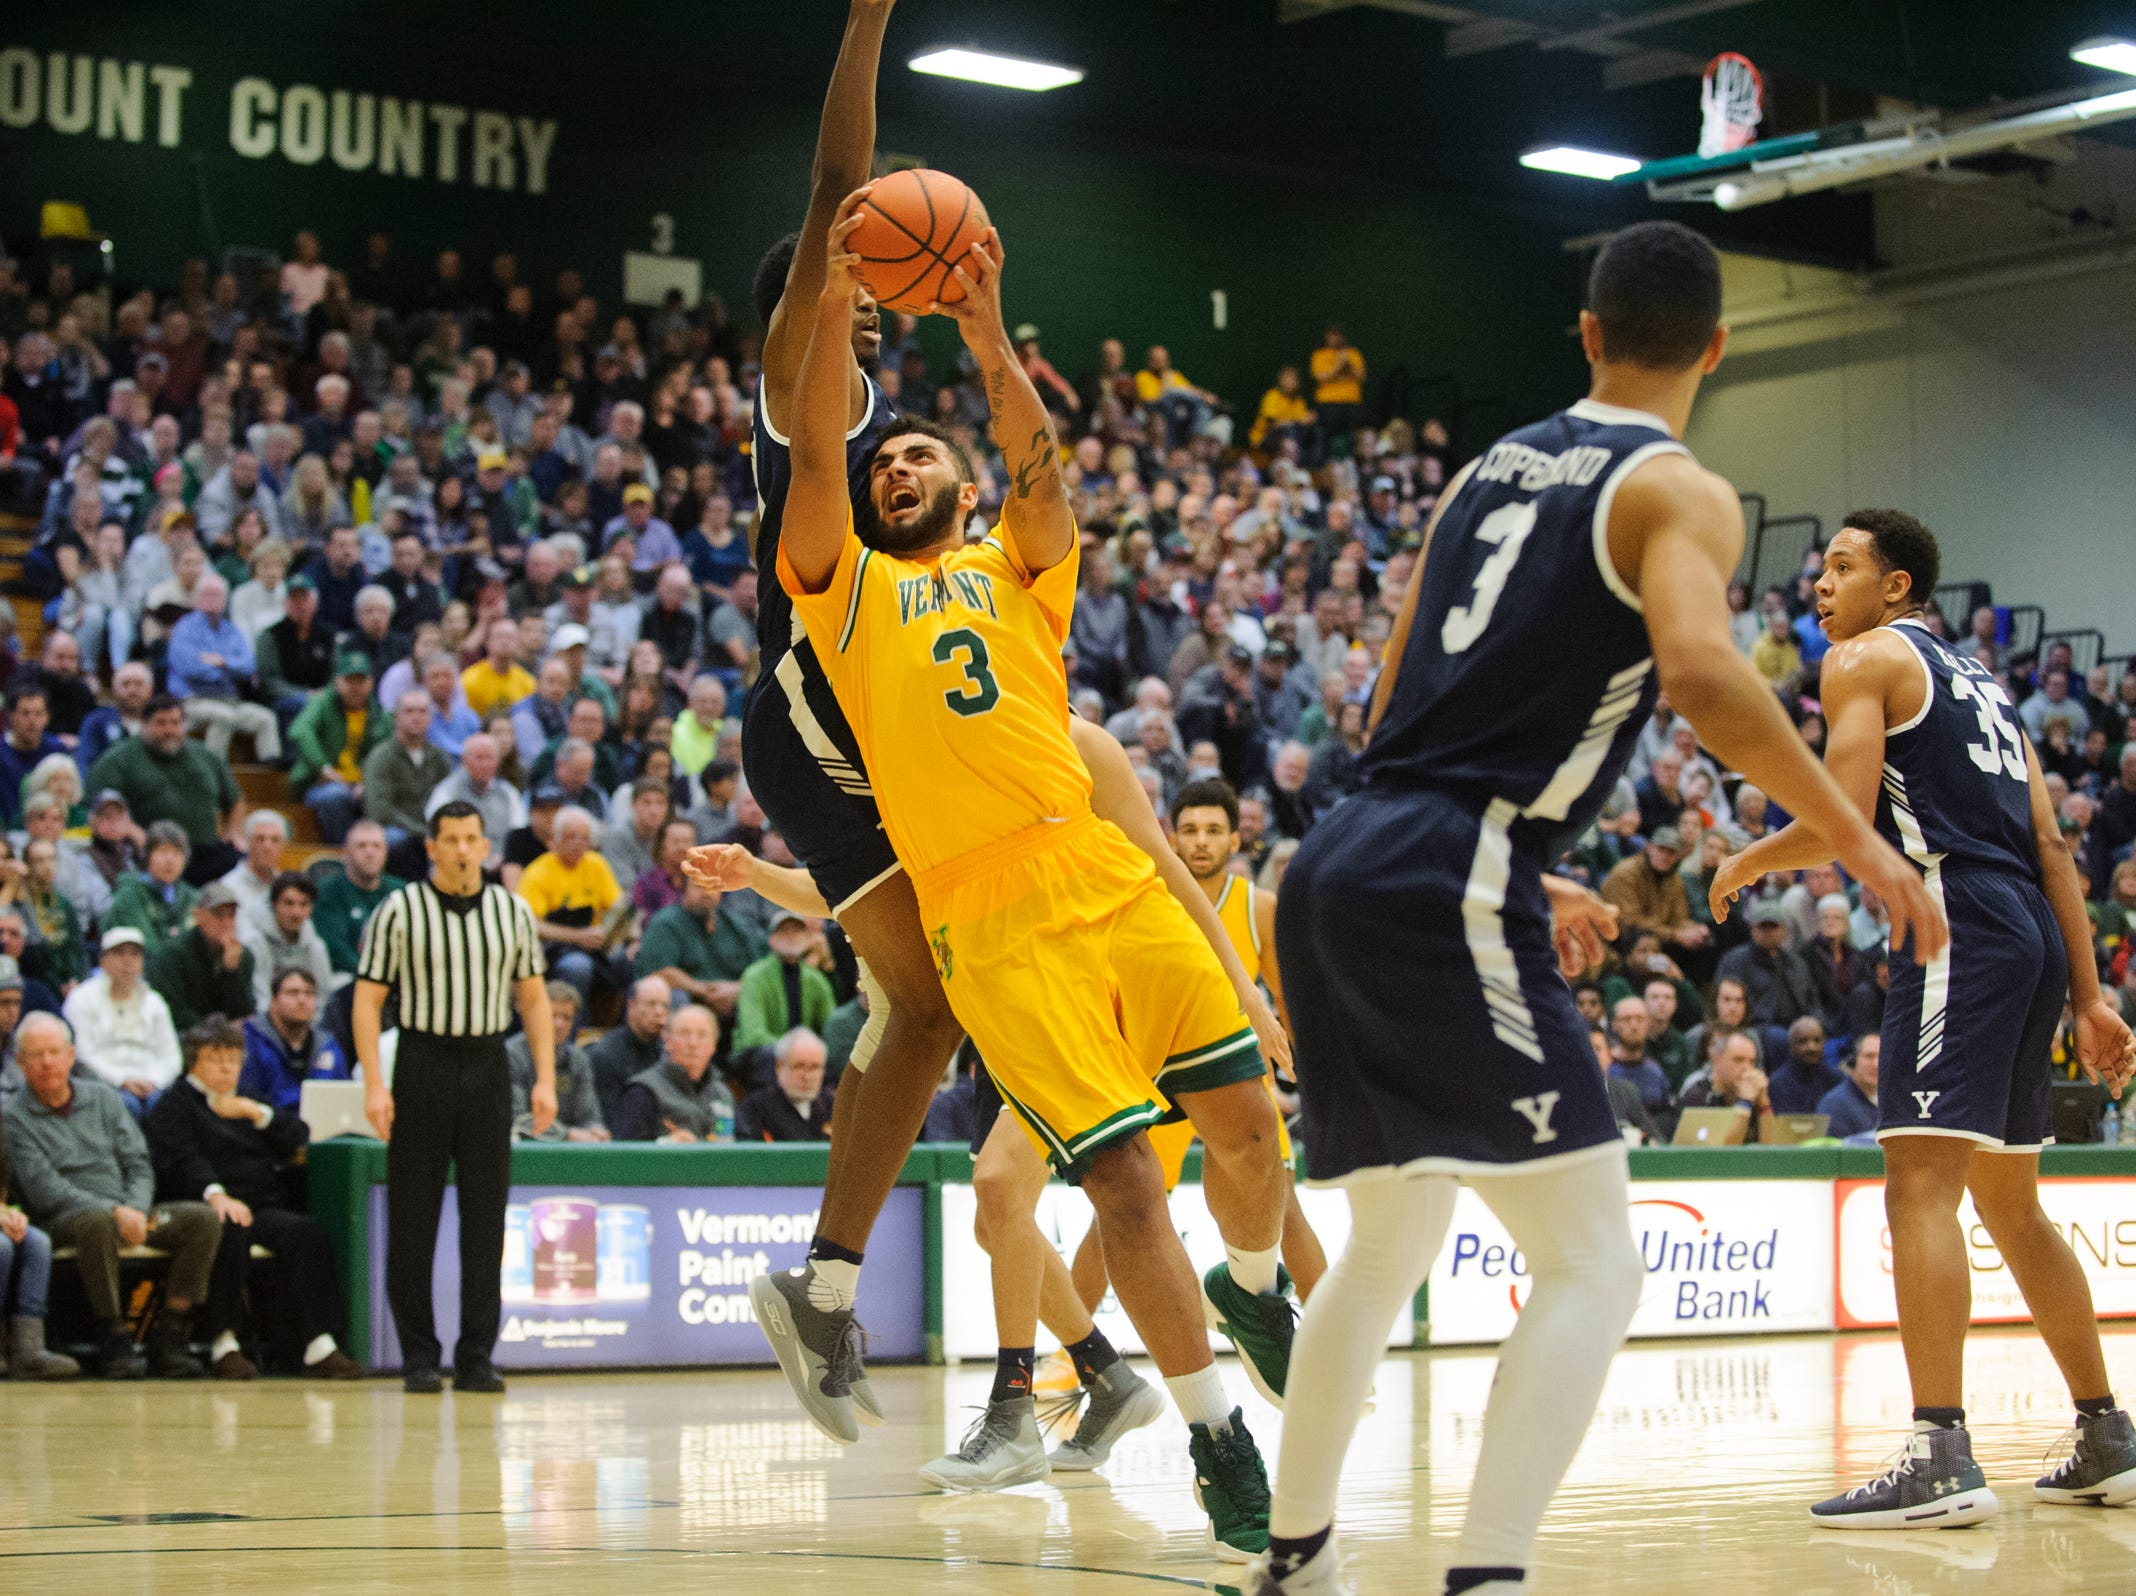 Vermont forward Anthony Lamb (3) drives to the hoop for a lay up during the men's basketball game between the Yale Bulldogs and the Vermont Catamounts at Patrick Gym on Wednesday night November 21, 2018 in Burlington.